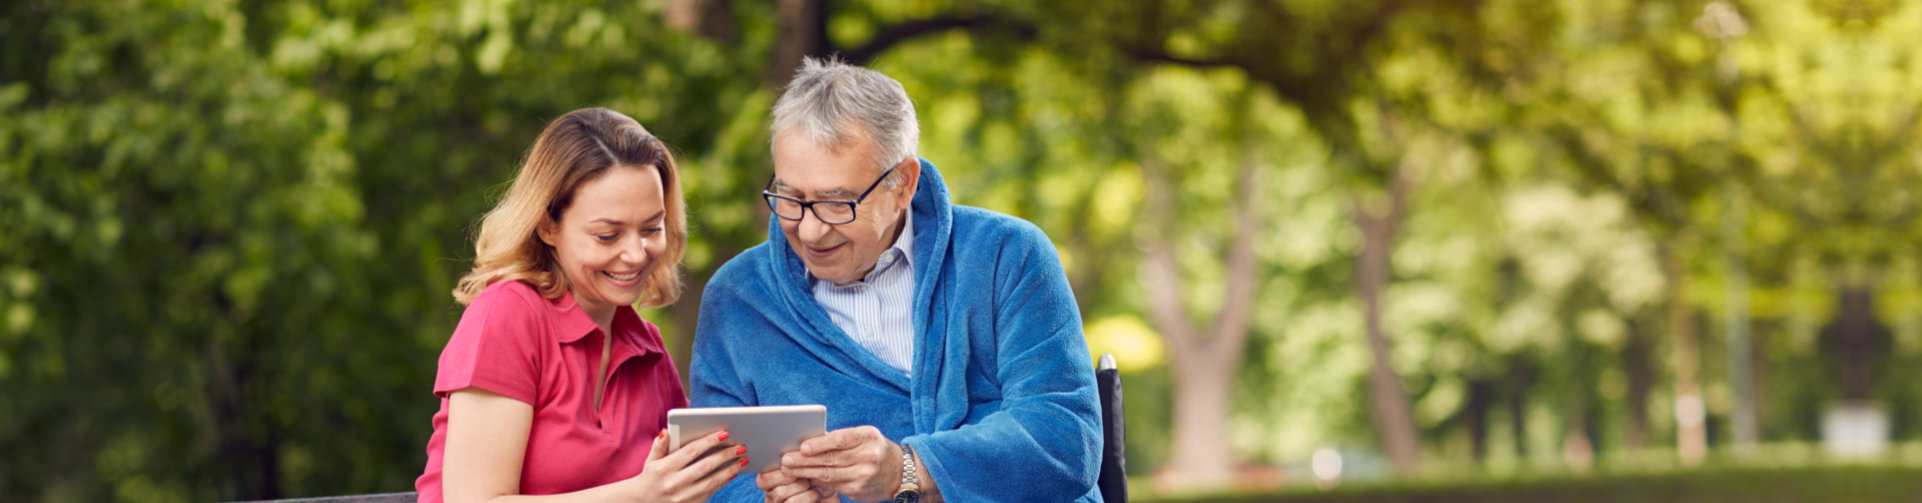 senior man with his caregiver smiling while reading